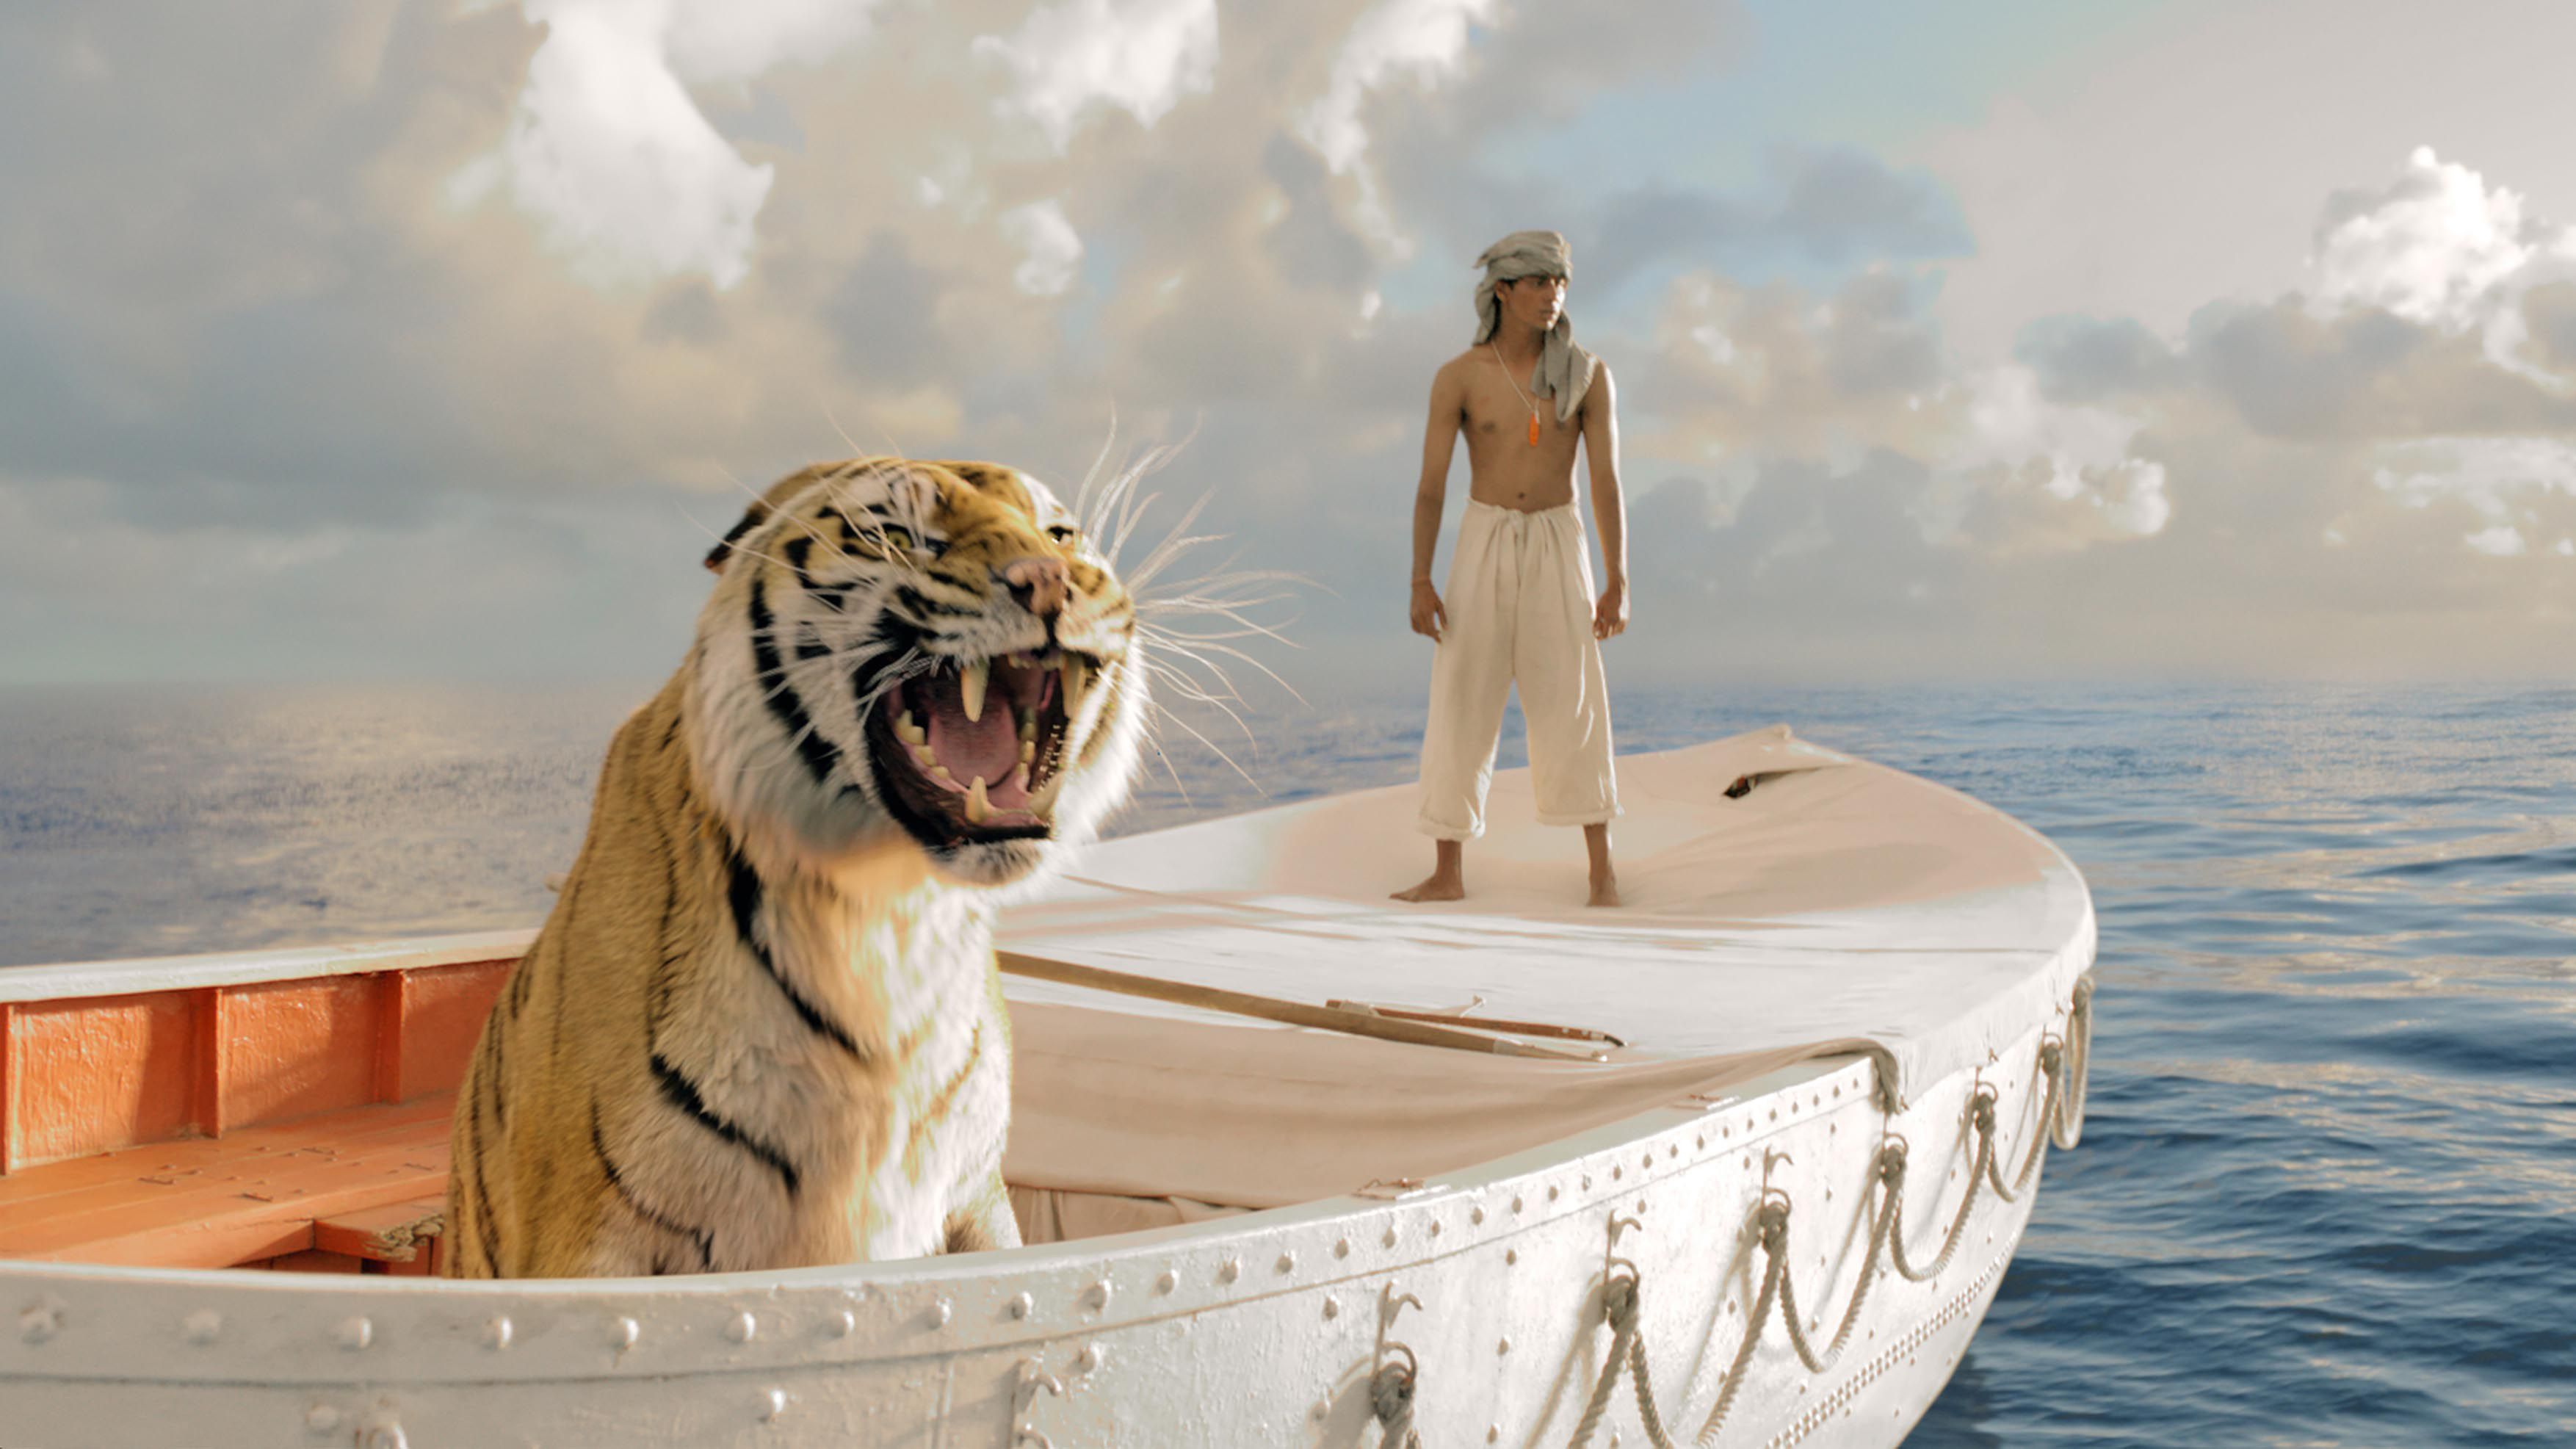 An image from Life of Pi